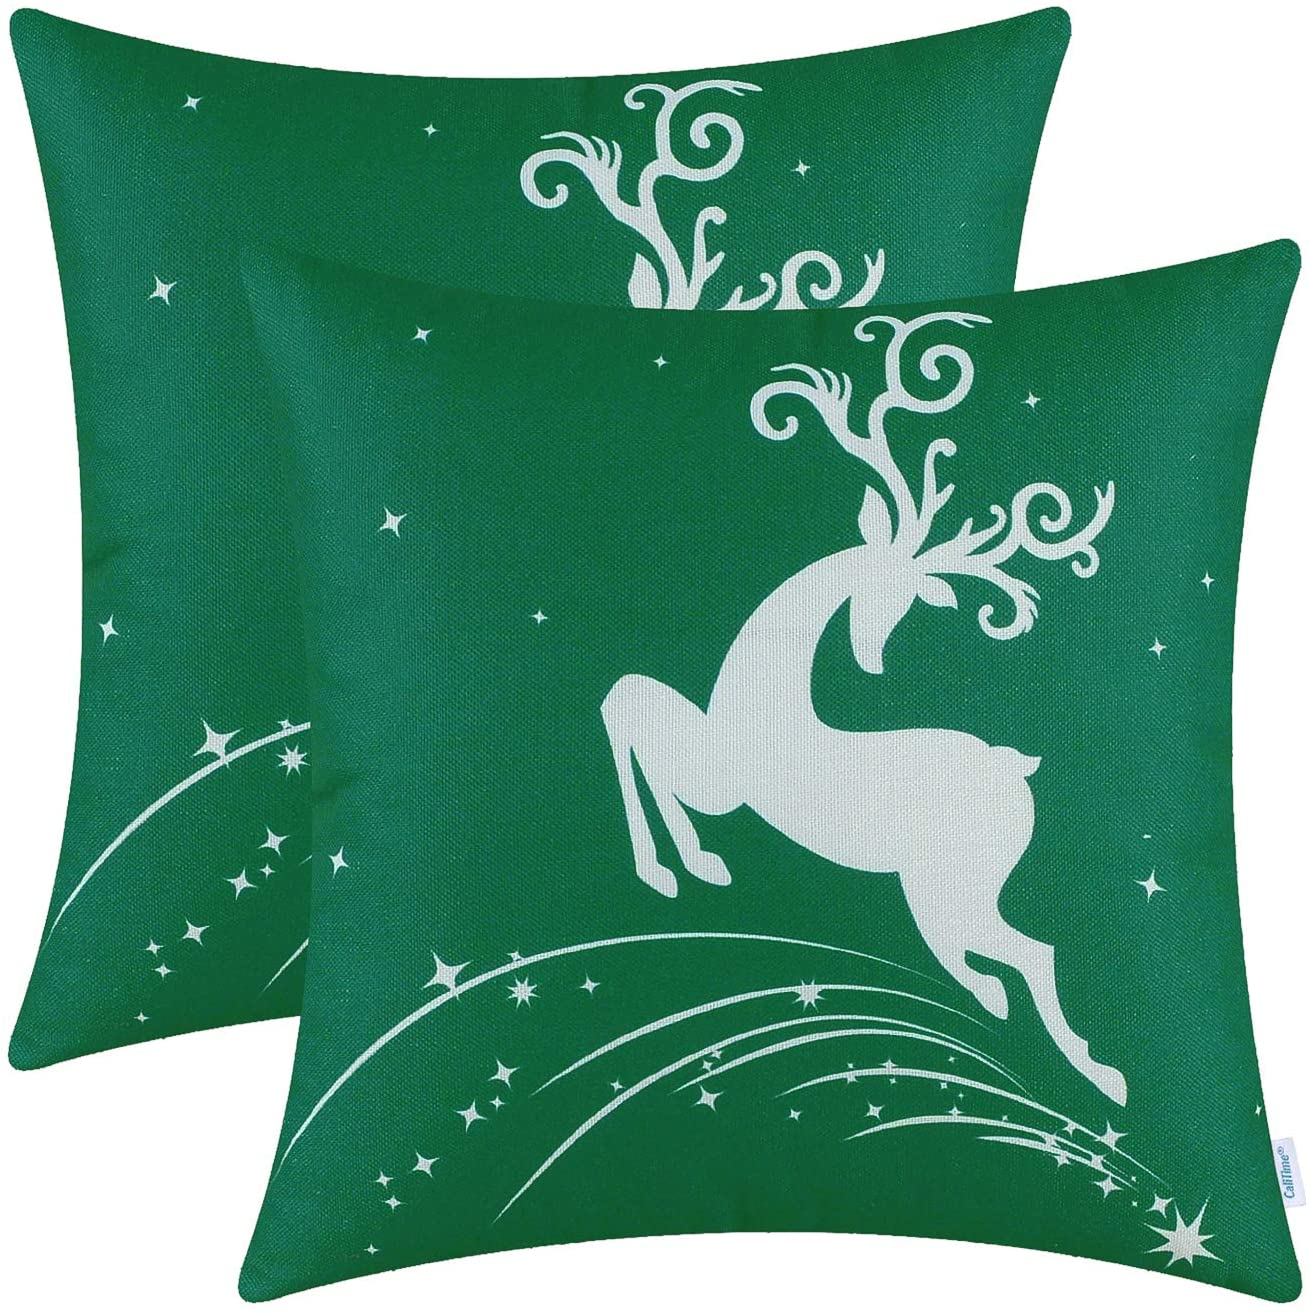 CaliTime Pack of 2 Soft Canvas Throw Pillow Covers Cases for Couch Sofa Home Decoration Christmas Holiday Reindeer Jump with Stars Print 20 X 20 Inches Christmas Green